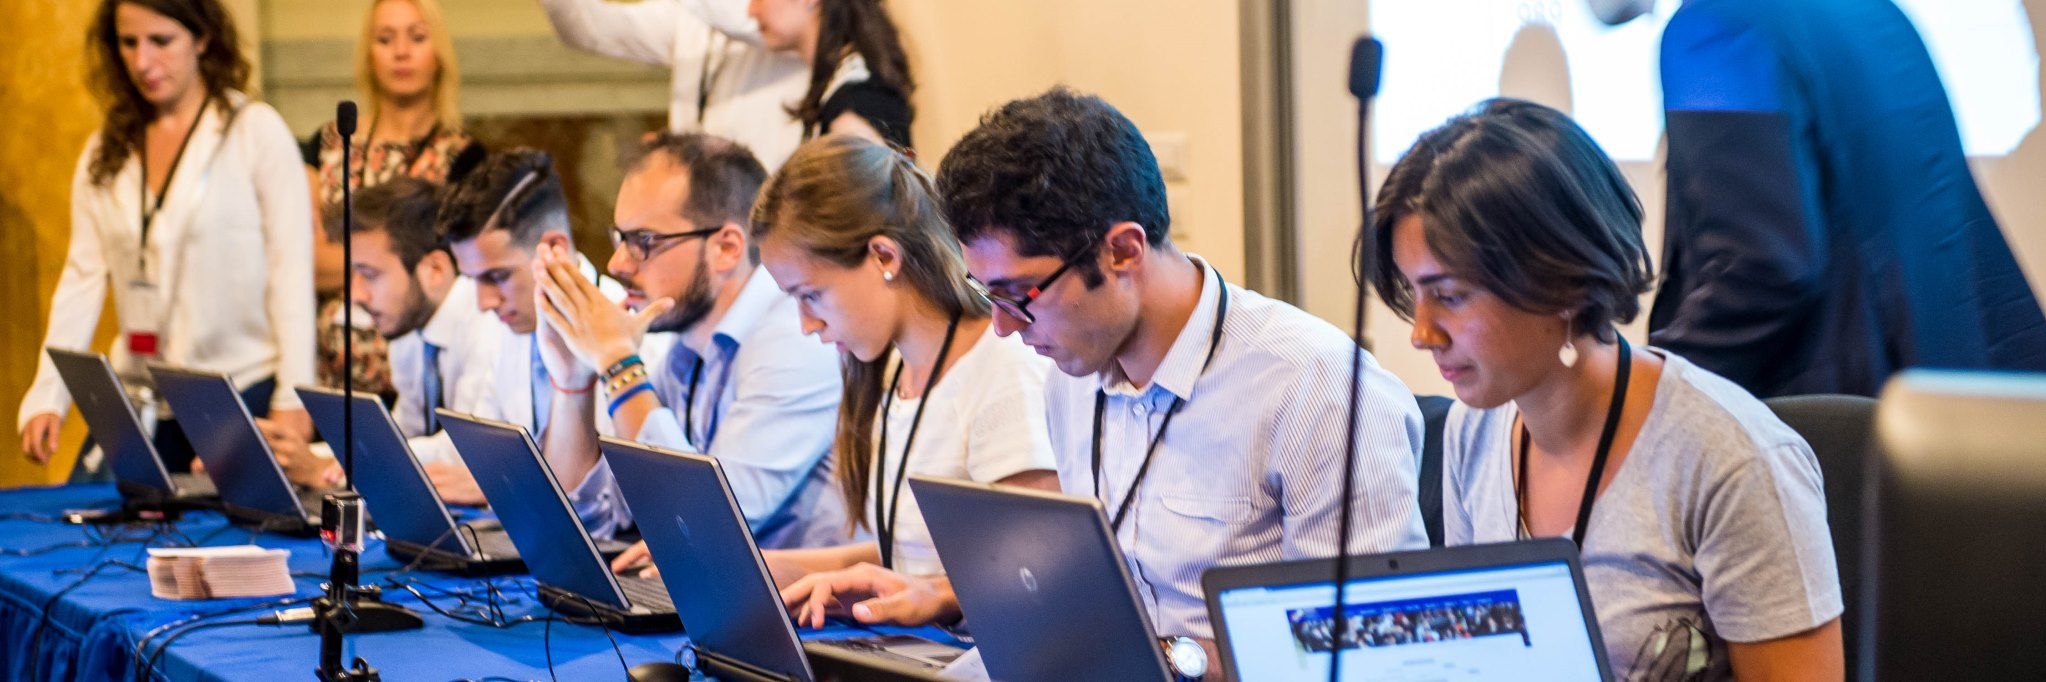 RETC Rotman European Trading Competition – Second Edition LUISS Guido Carli Sede di viale Romania Roma 25 Agosto 2016